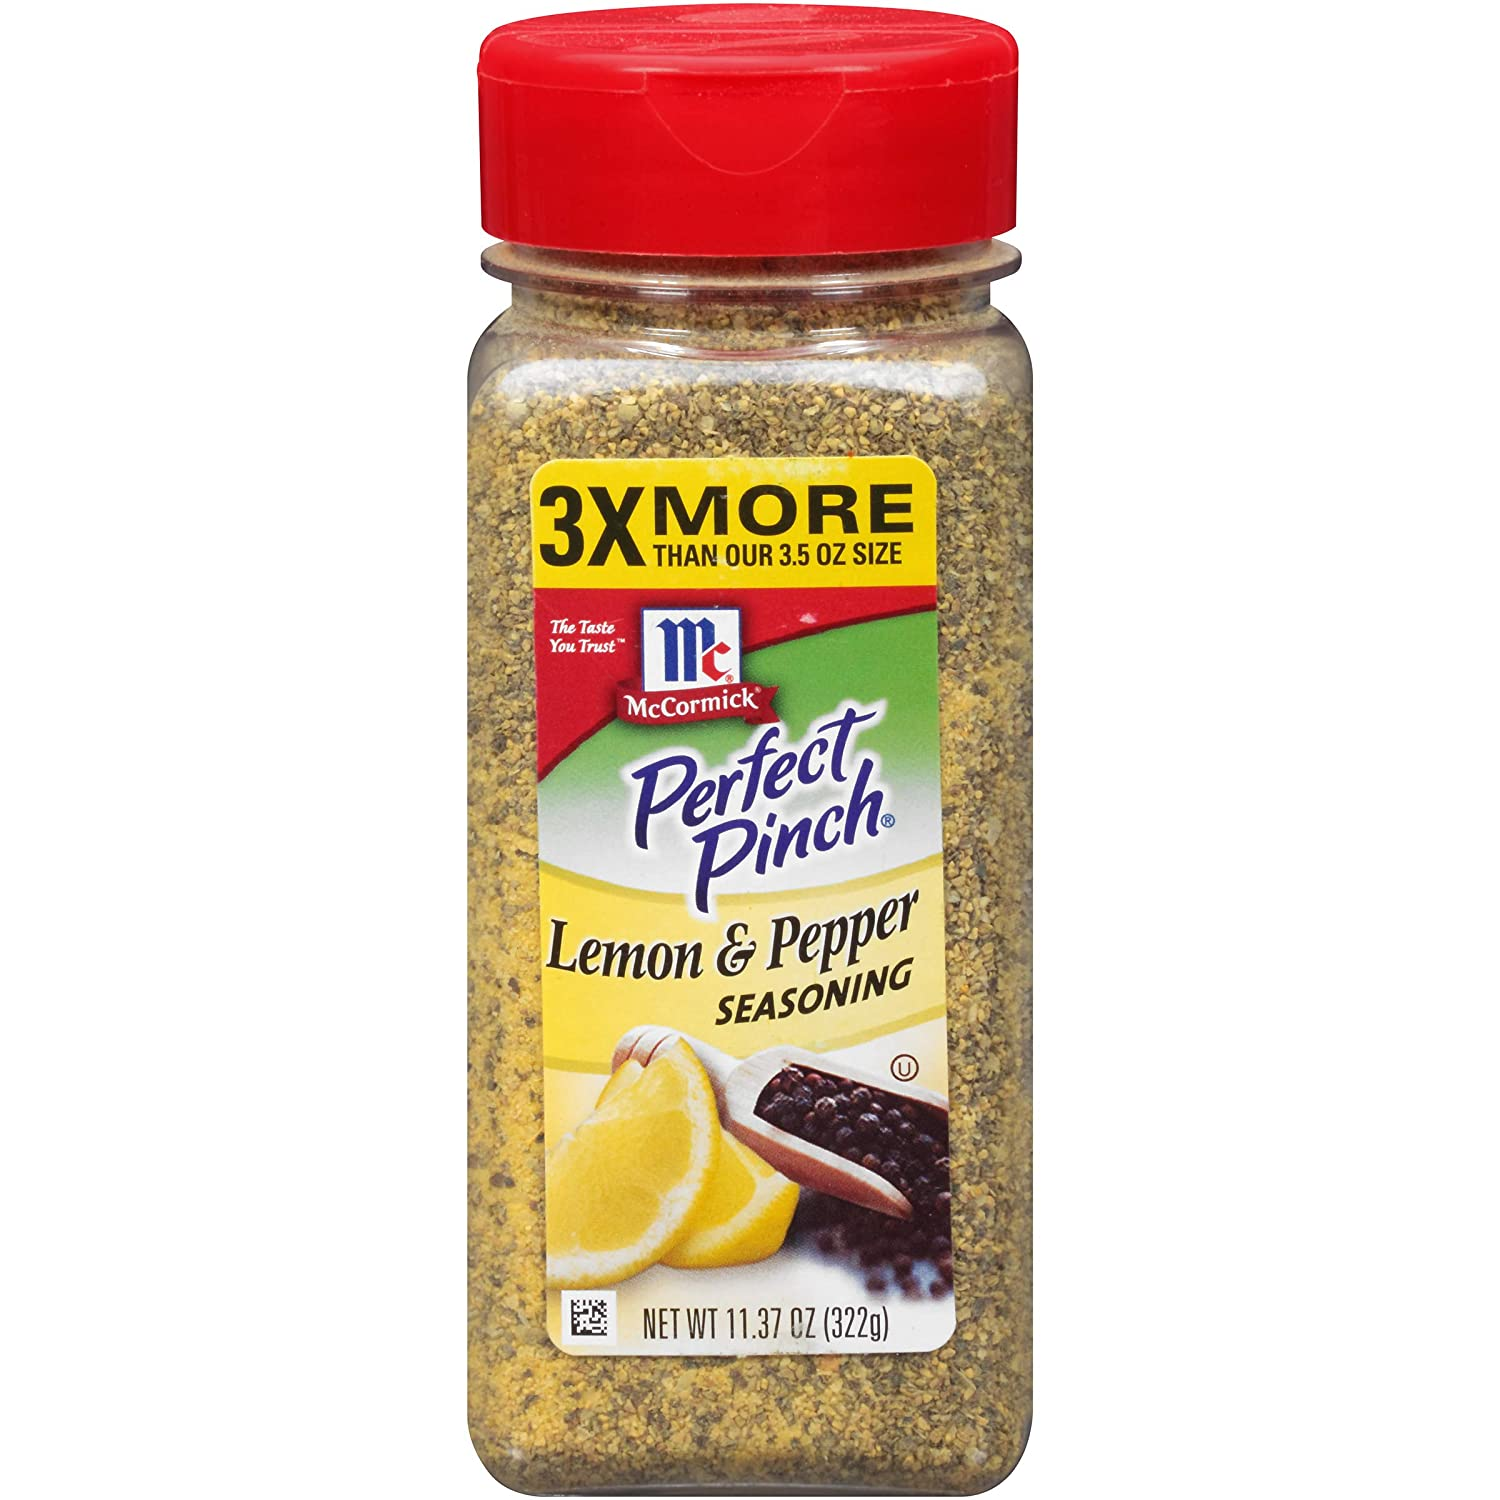 McCormick Perfect Pinch, Lemon & Pepper Seasoning, 11.37 oz